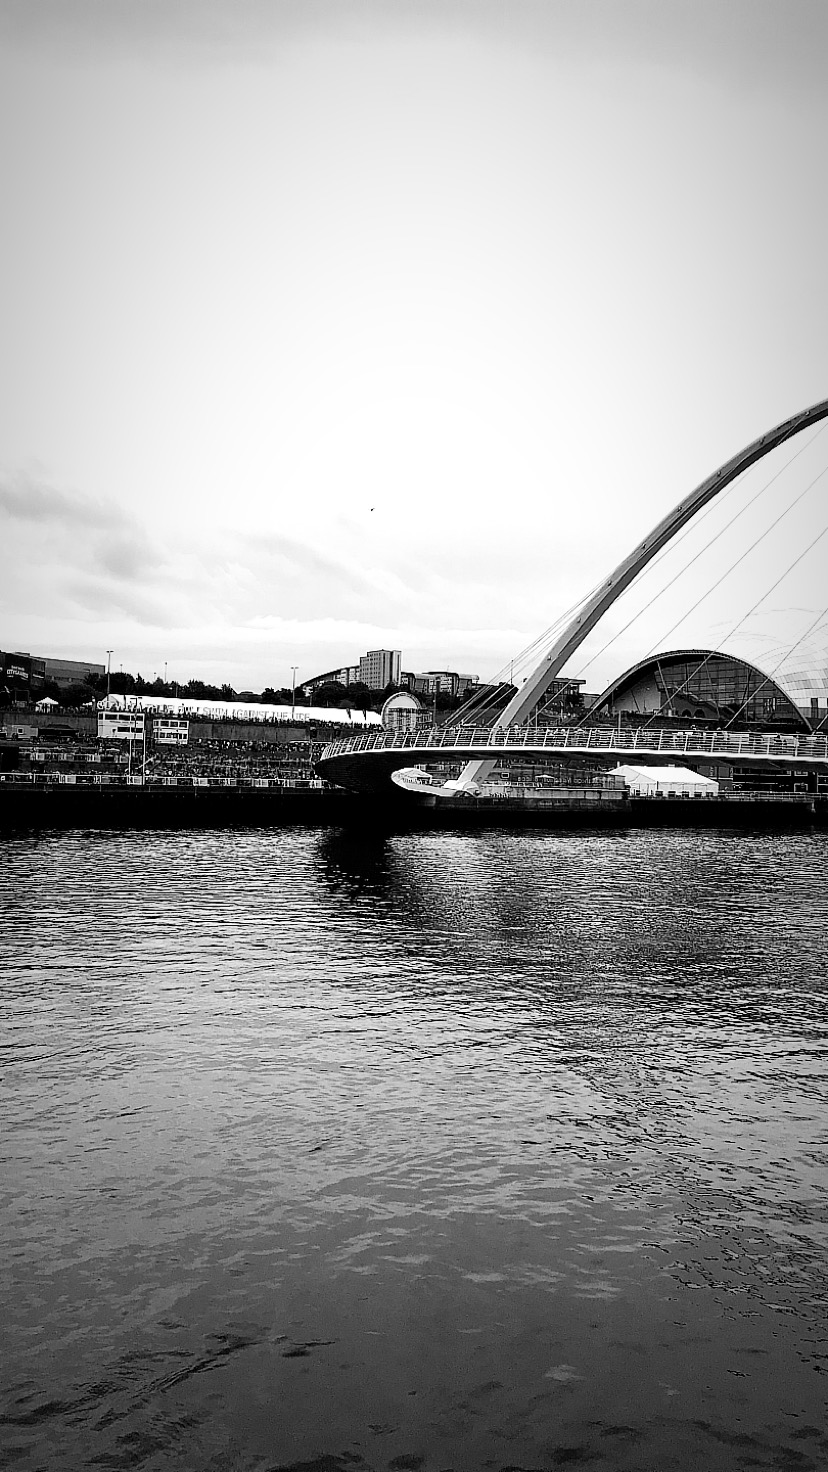 """Tips for running the Great North Run (or any half marathon)   Elle Blonde   If you're looking to run a half marathon here are our tips for the Great North Run, including our 8 week half marathon running training guide FREE download   Fitness   Elle Blonde Luxury Lifestyle Destination Blog """" Newcastle Upon Tyne, Millennium Bridge, Gateshead. Great North City Games"""